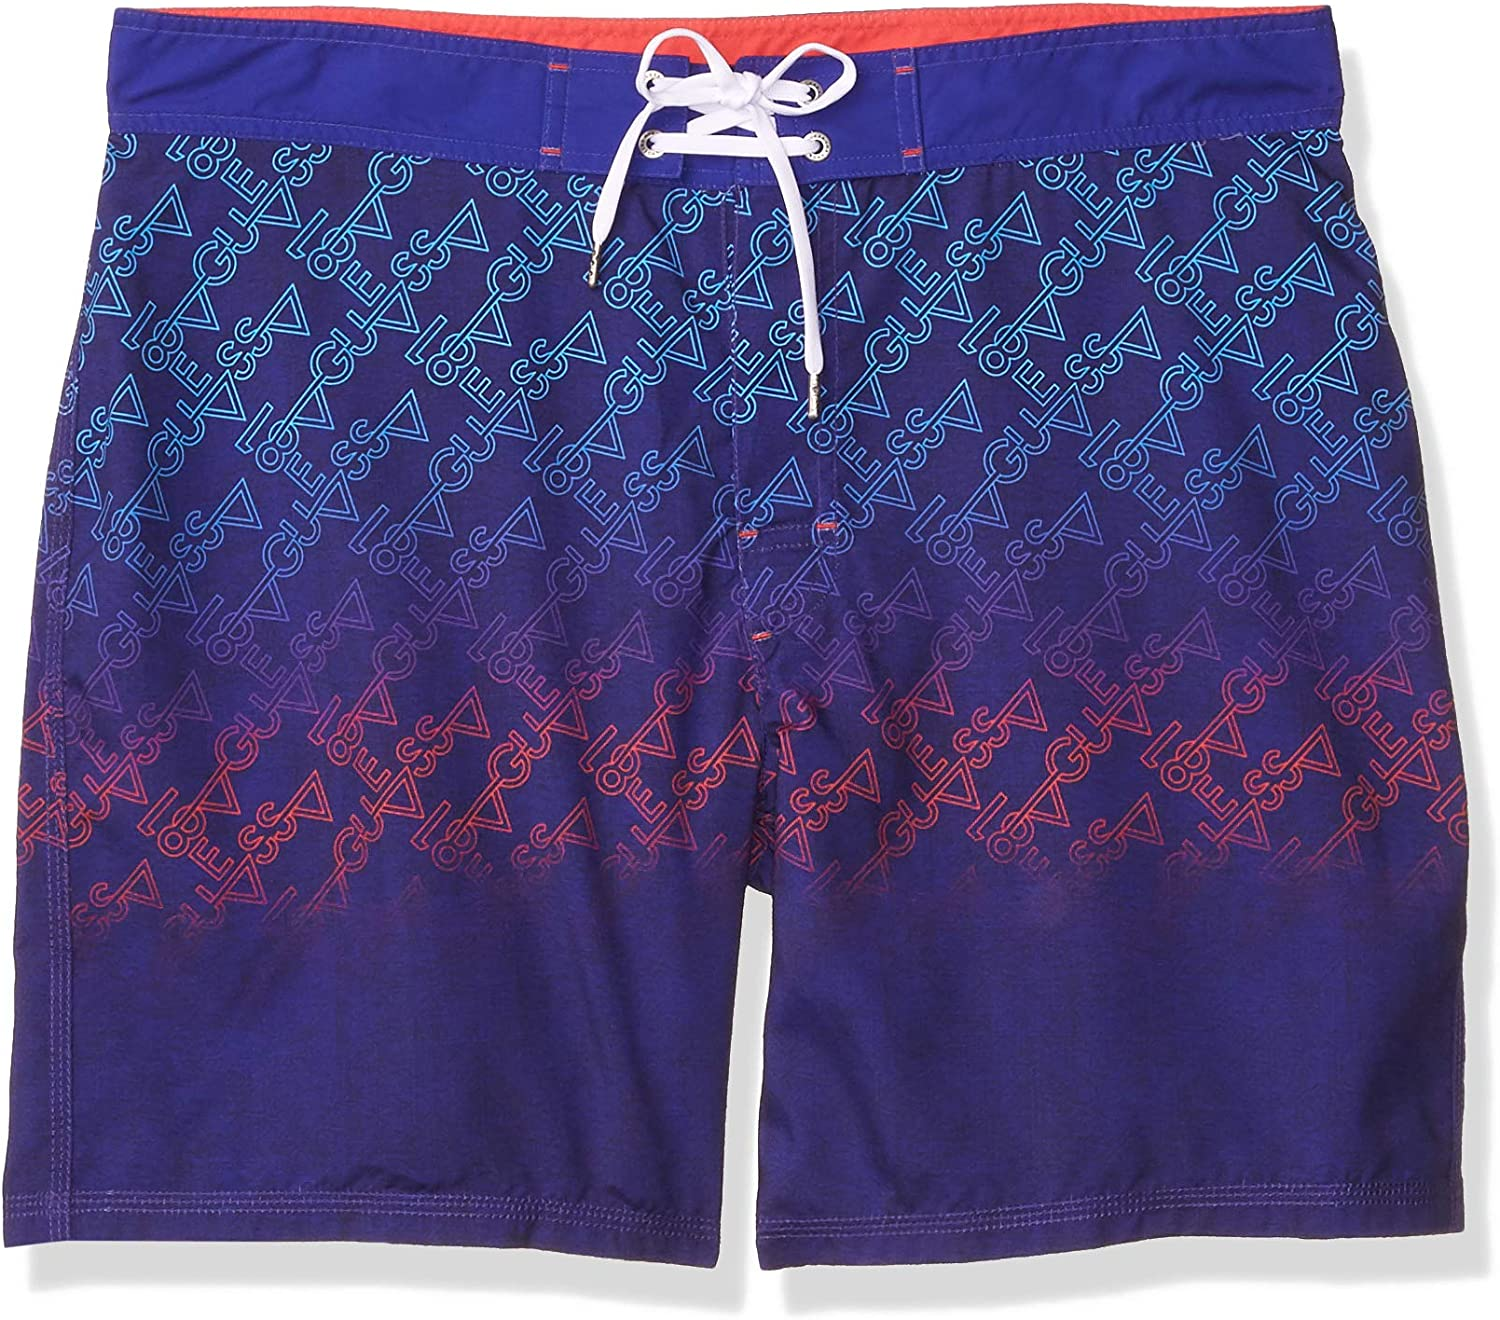 "GUESS Men's Printed 18"" Fixed Waist Swim Trunk"